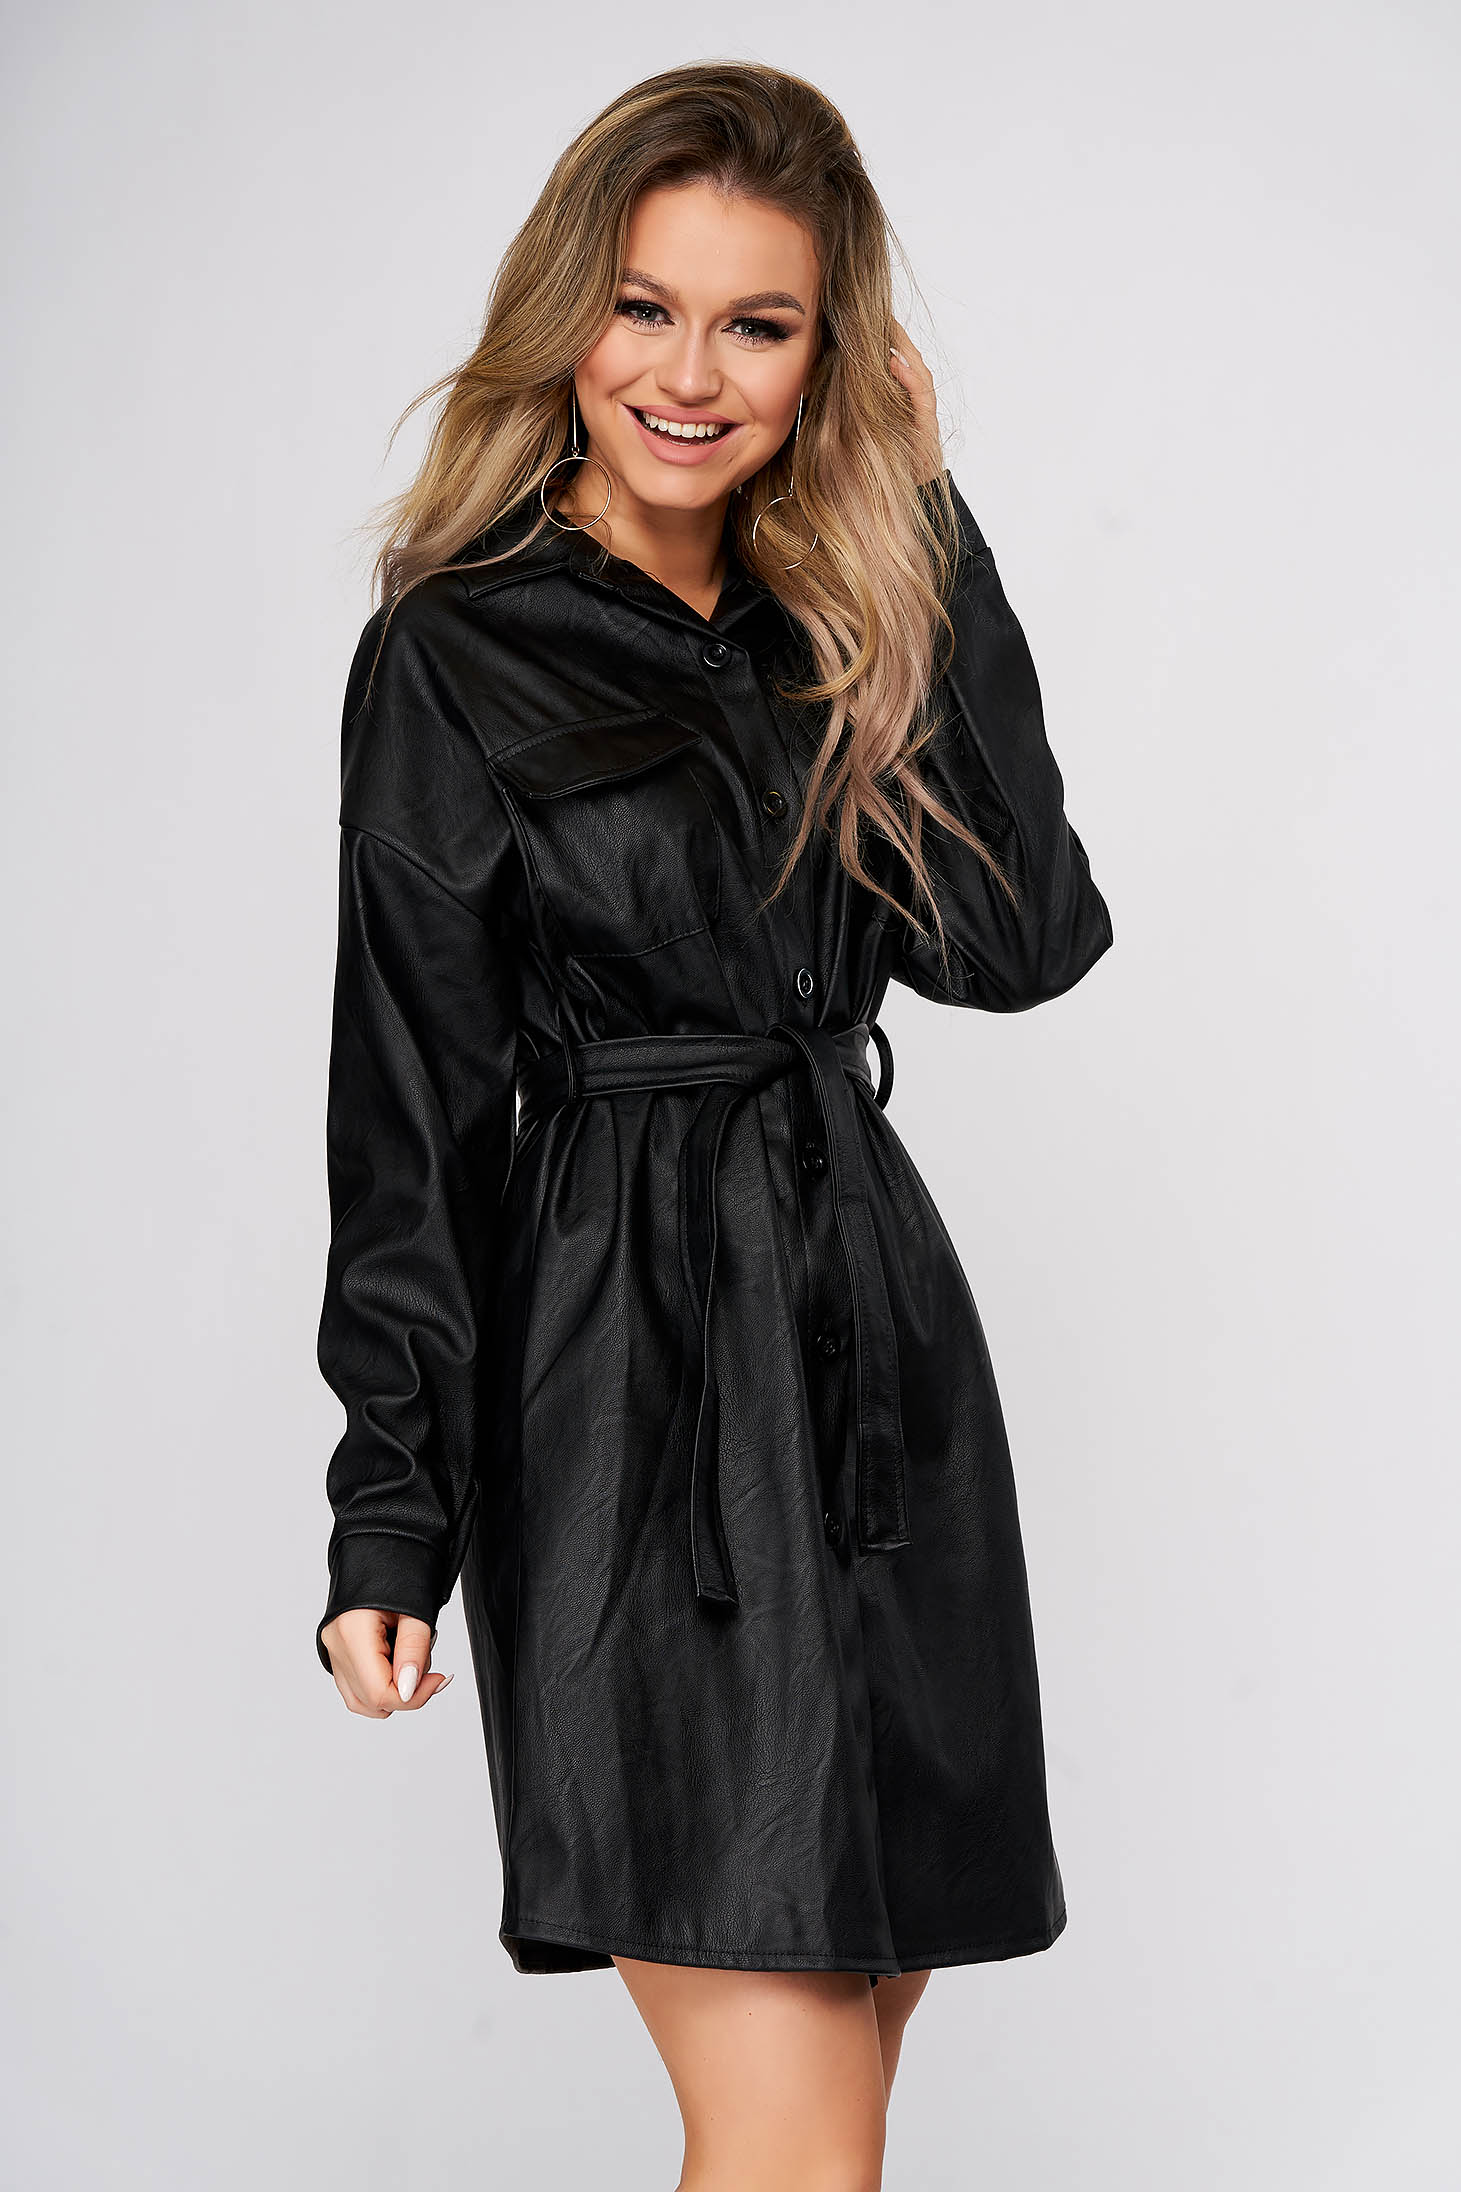 Black dress short cut casual from ecological leather shirt dress